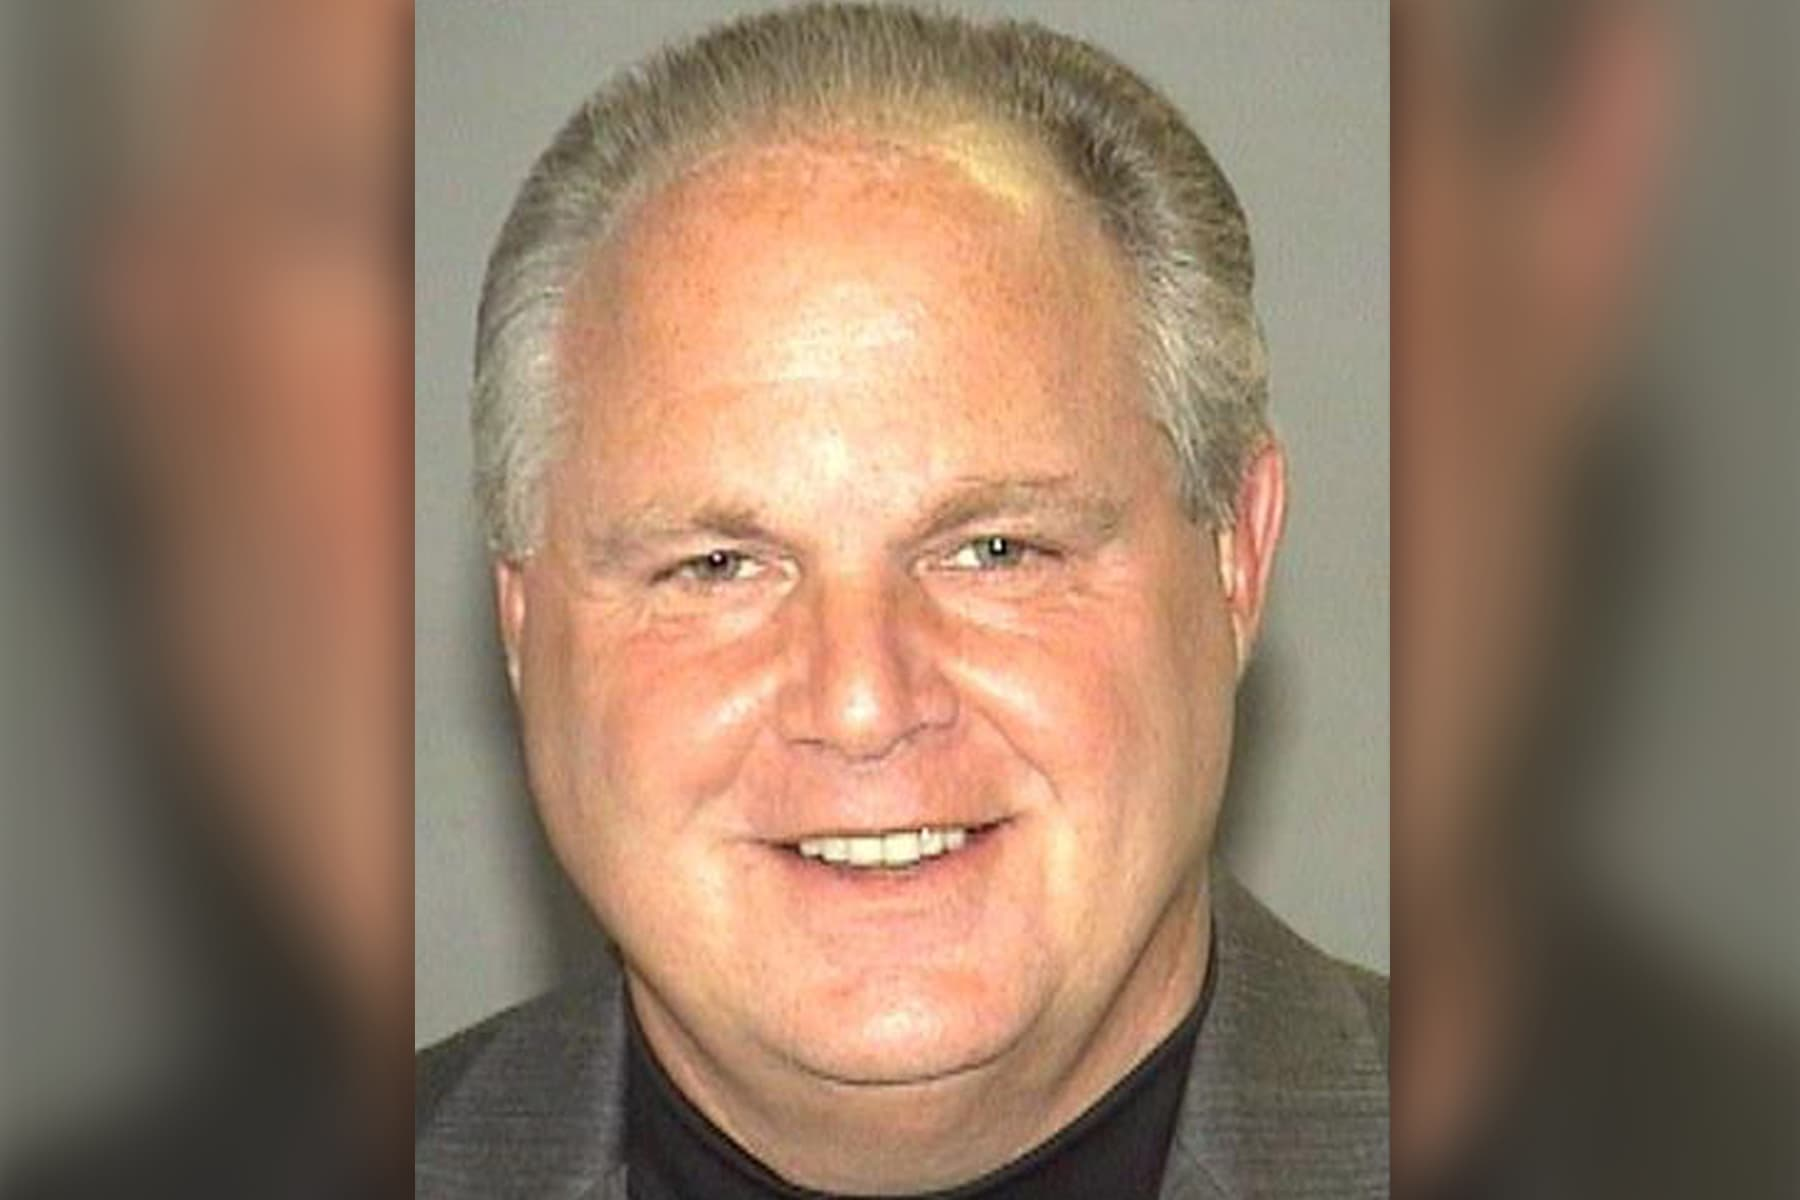 Radio host Rush Limbaugh reveals he has advanced lung cancer